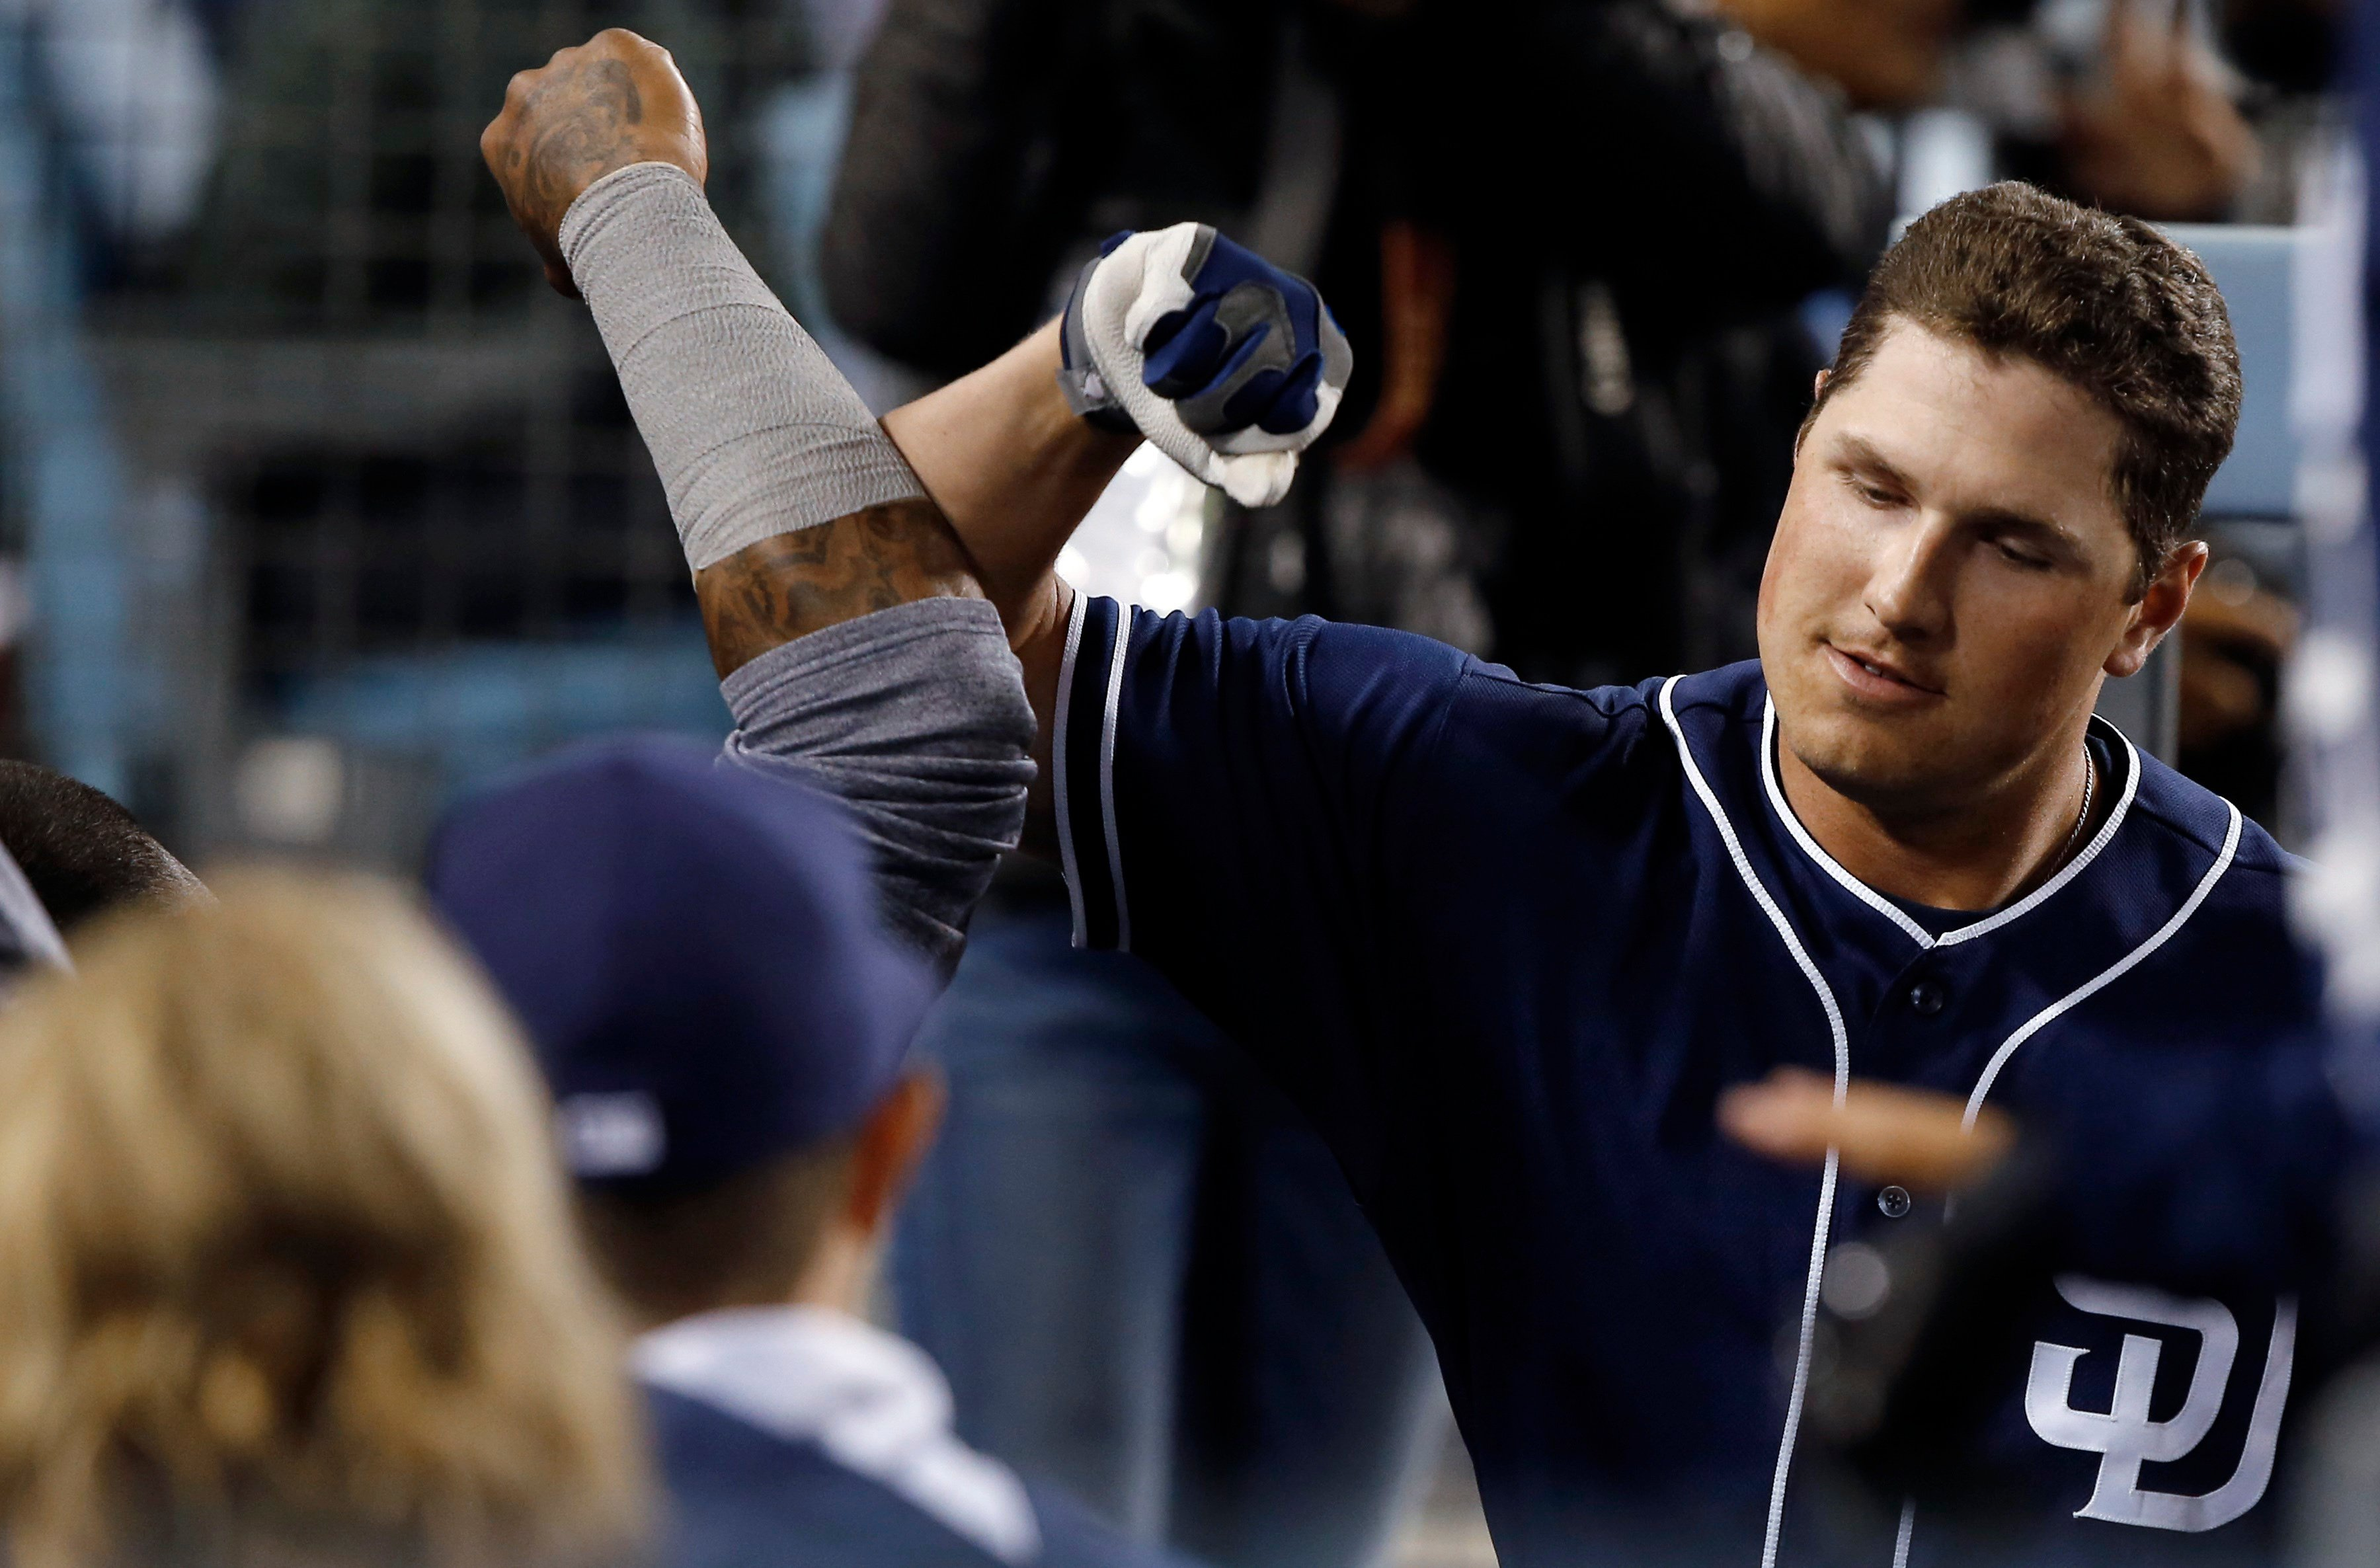 San Diego Padres' Hunter Renfroe, right, gets congratulations from teammates after hitting a solo home run during the fourth inning of the team's baseball game against the Los Angeles Dodgers in Los Angeles, Wednesday, April 5, 2017. (AP Photo/Alex Gallar